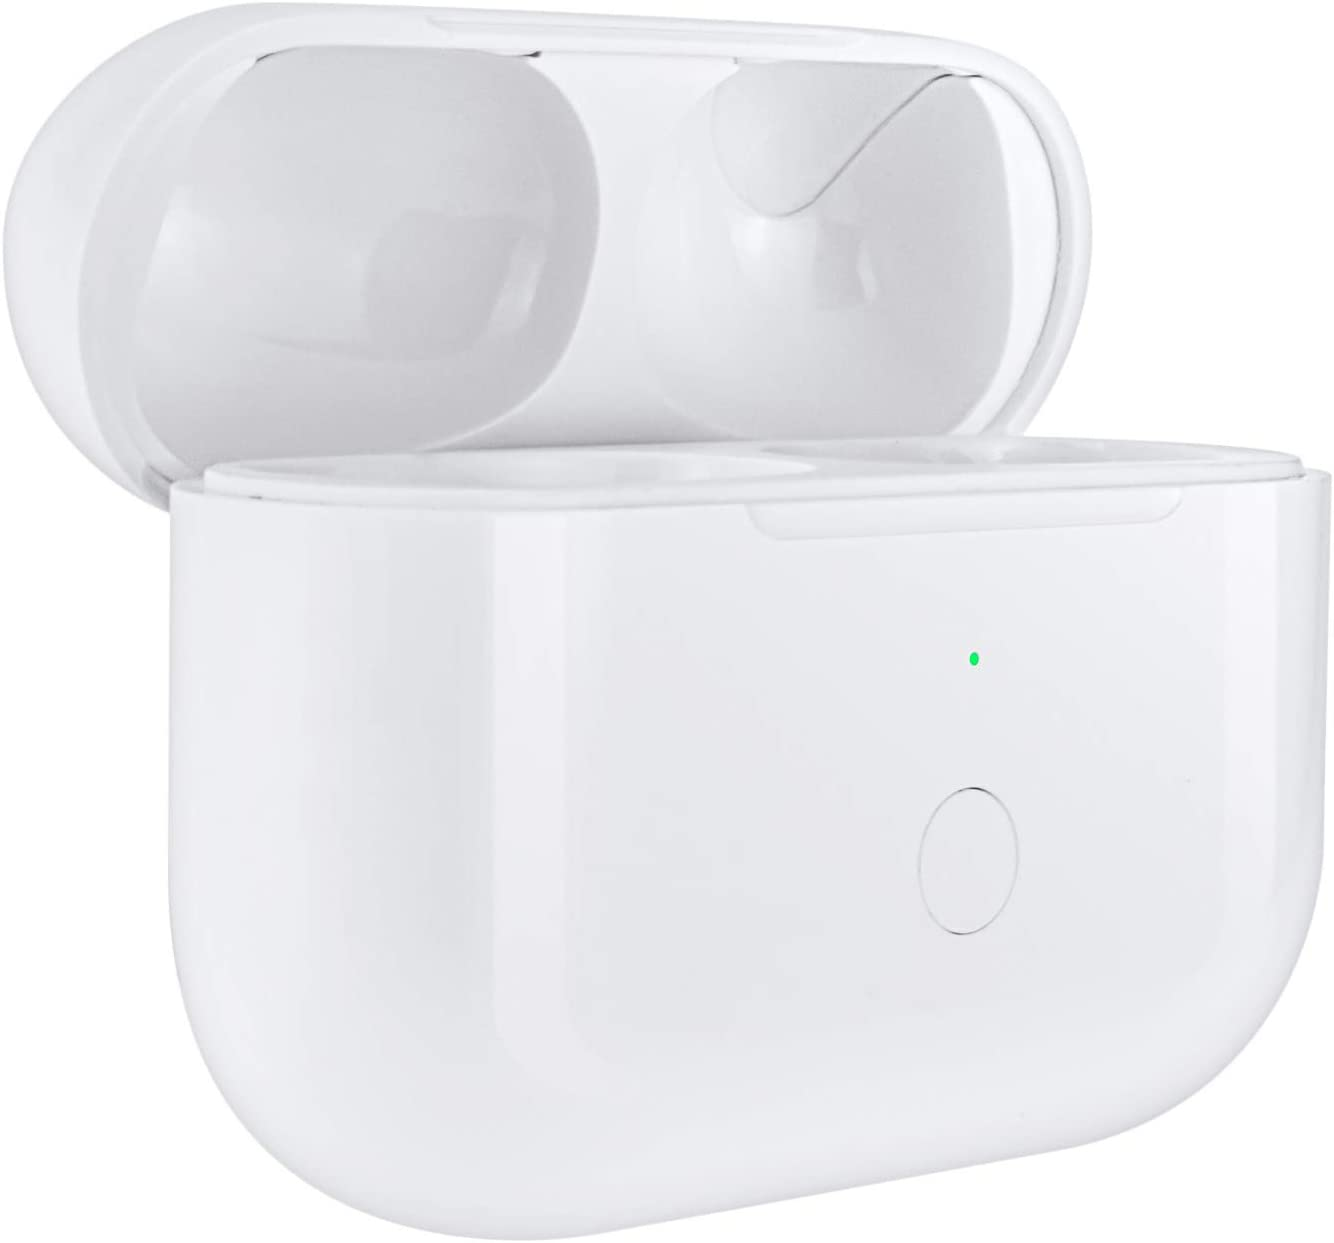 SibyTech Compatible with for Earbuds pro Charger Case with Sync Button, Compatible with for Wireless Air pods Pro Charging Case Replacement (White)